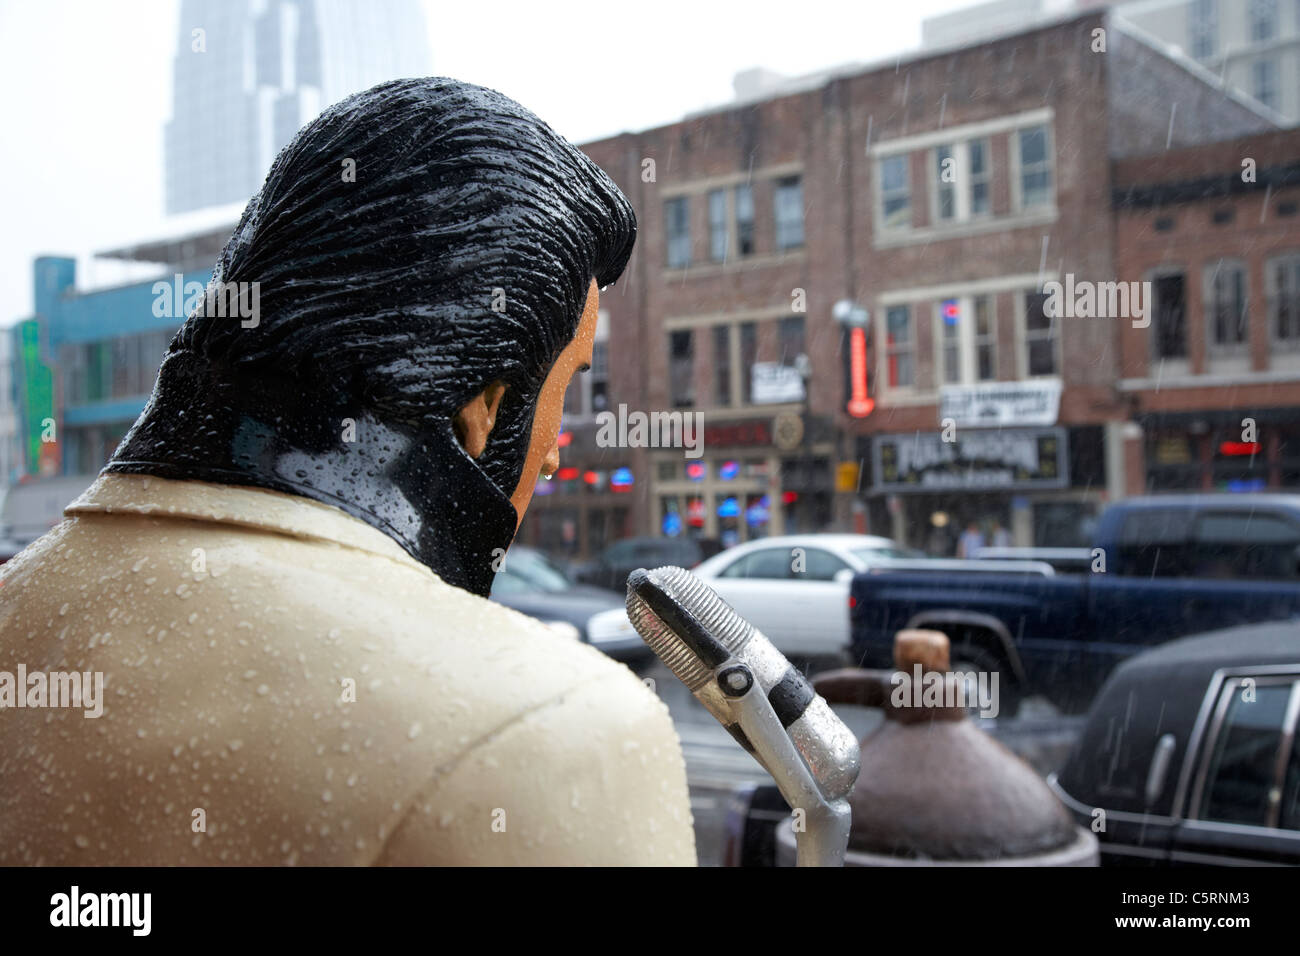 elvis statue in heavy rain downtown broadway Nashville Tennessee USA - Stock Image